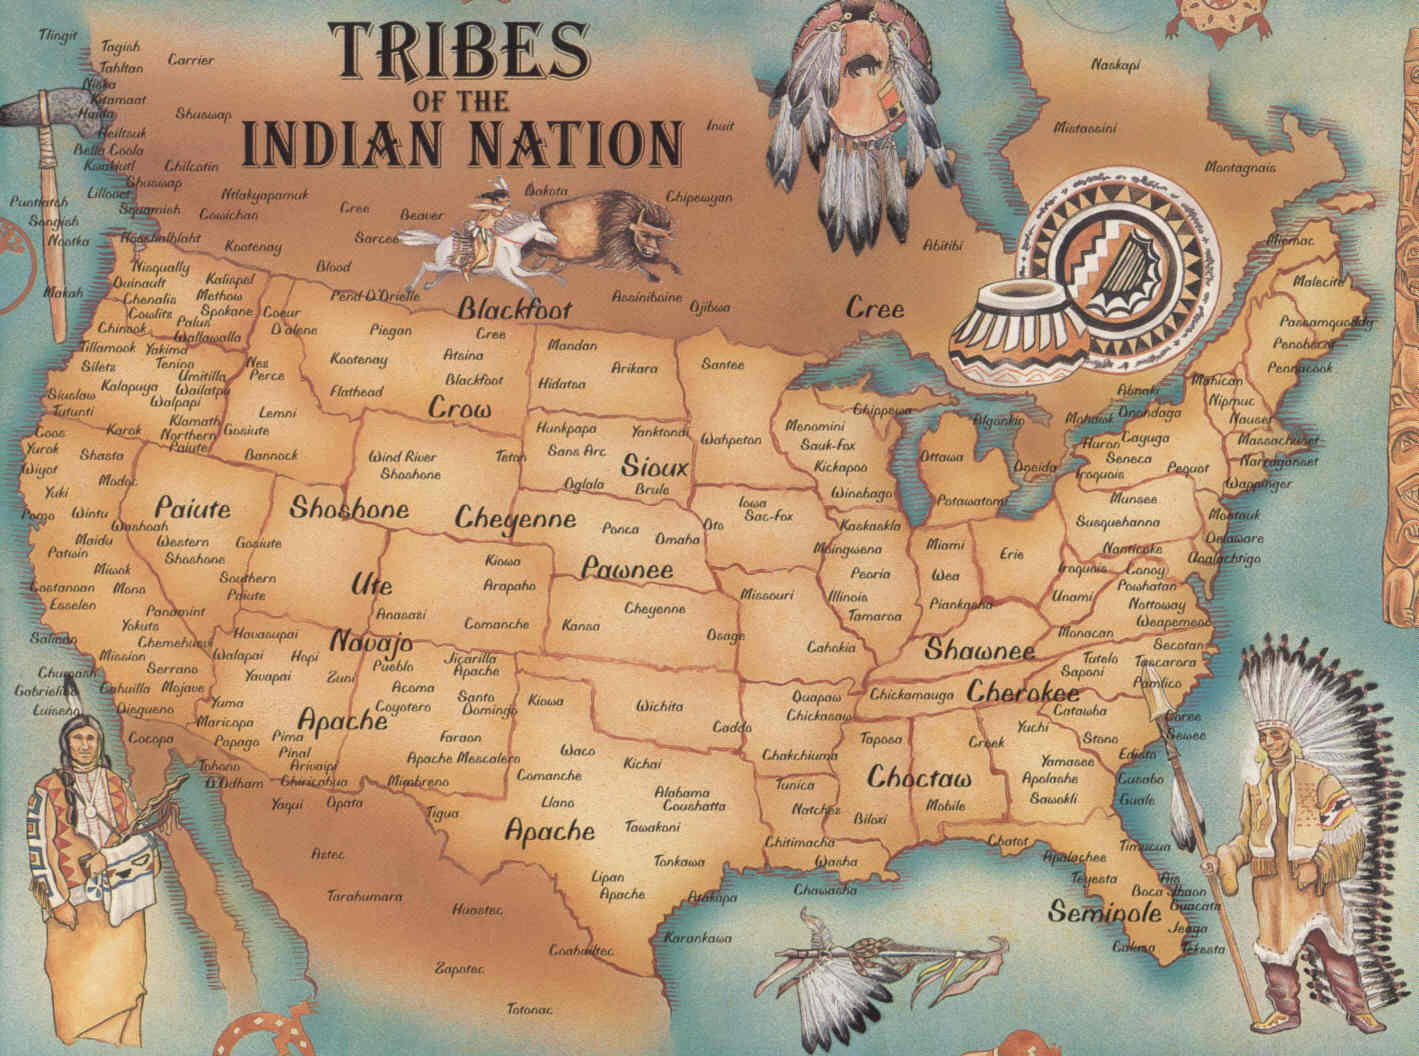 Image Native American Tribes Map Jpg Oral Tradition Wiki - Oral map